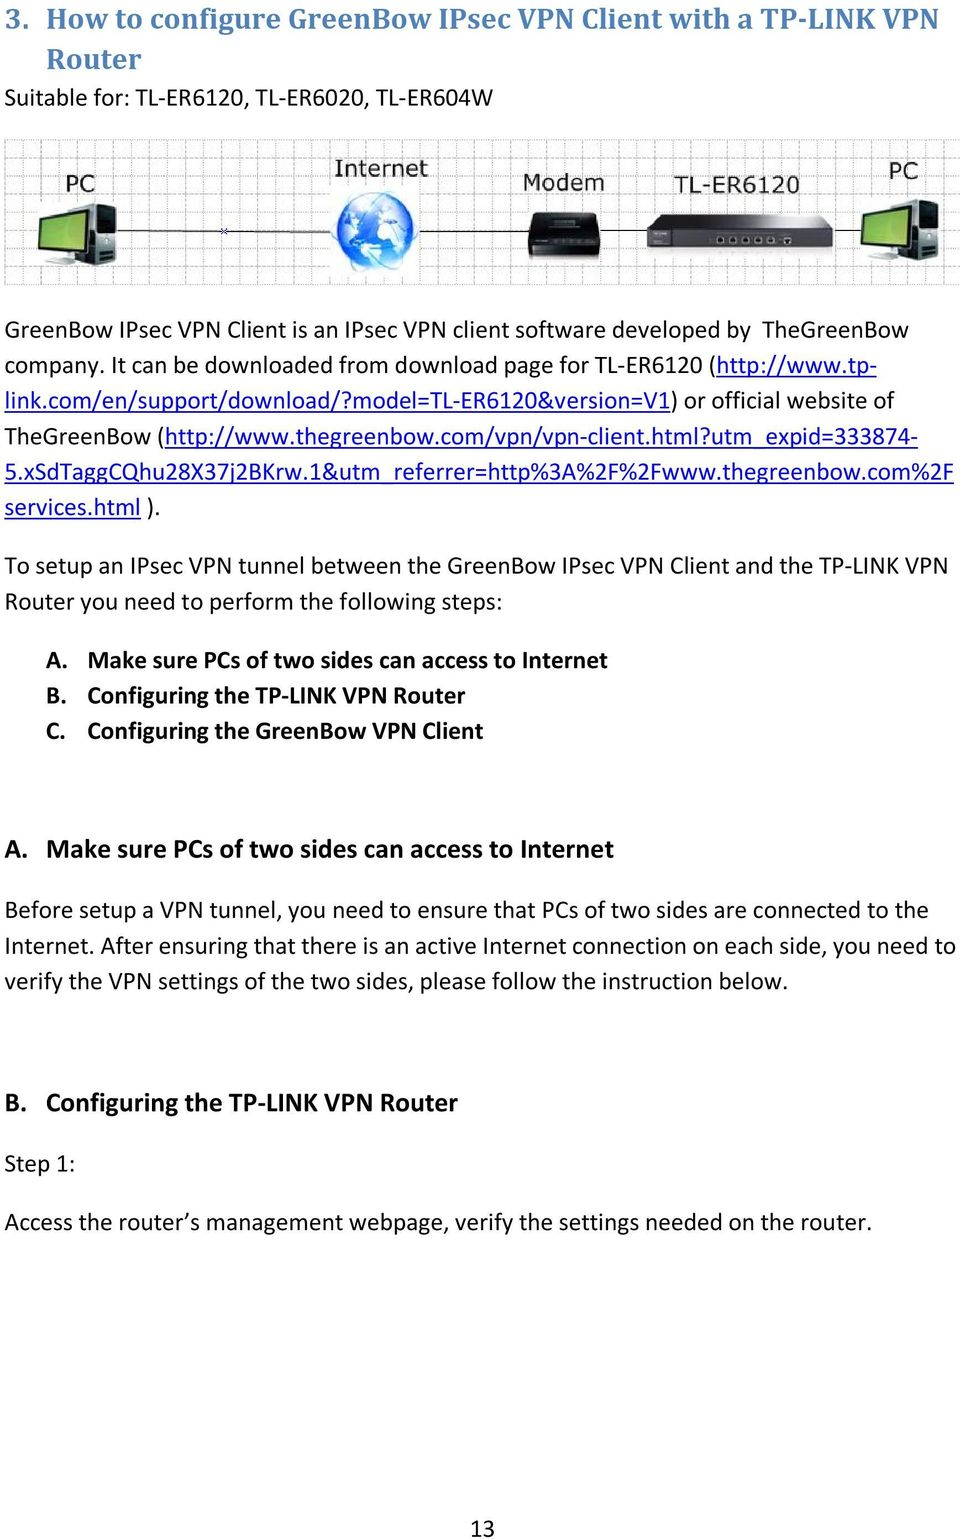 How to configure VPN function on TP-LINK Routers - PDF